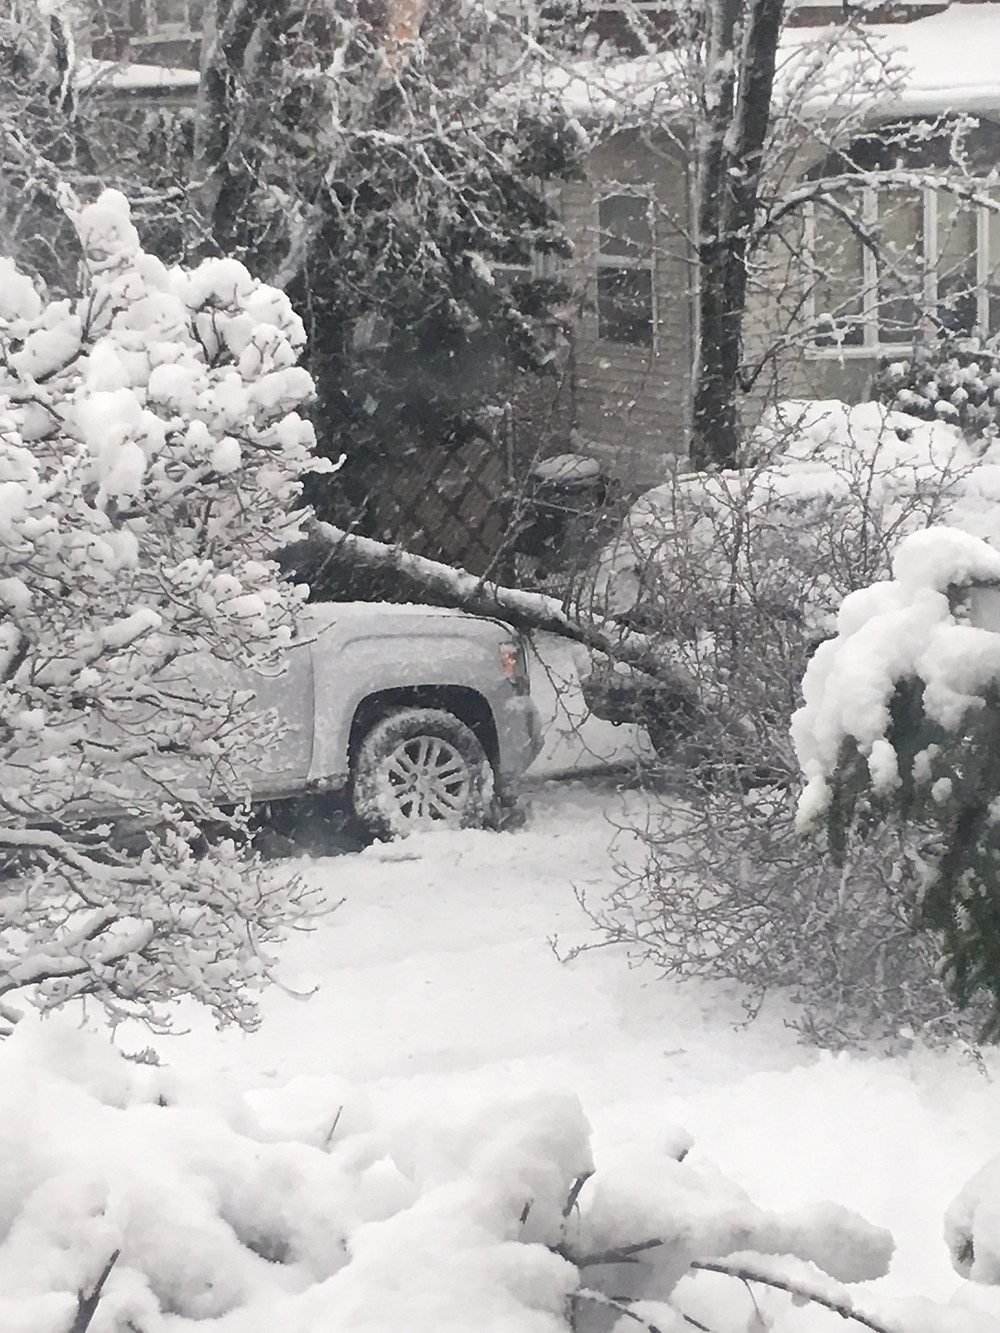 Tree fell on car